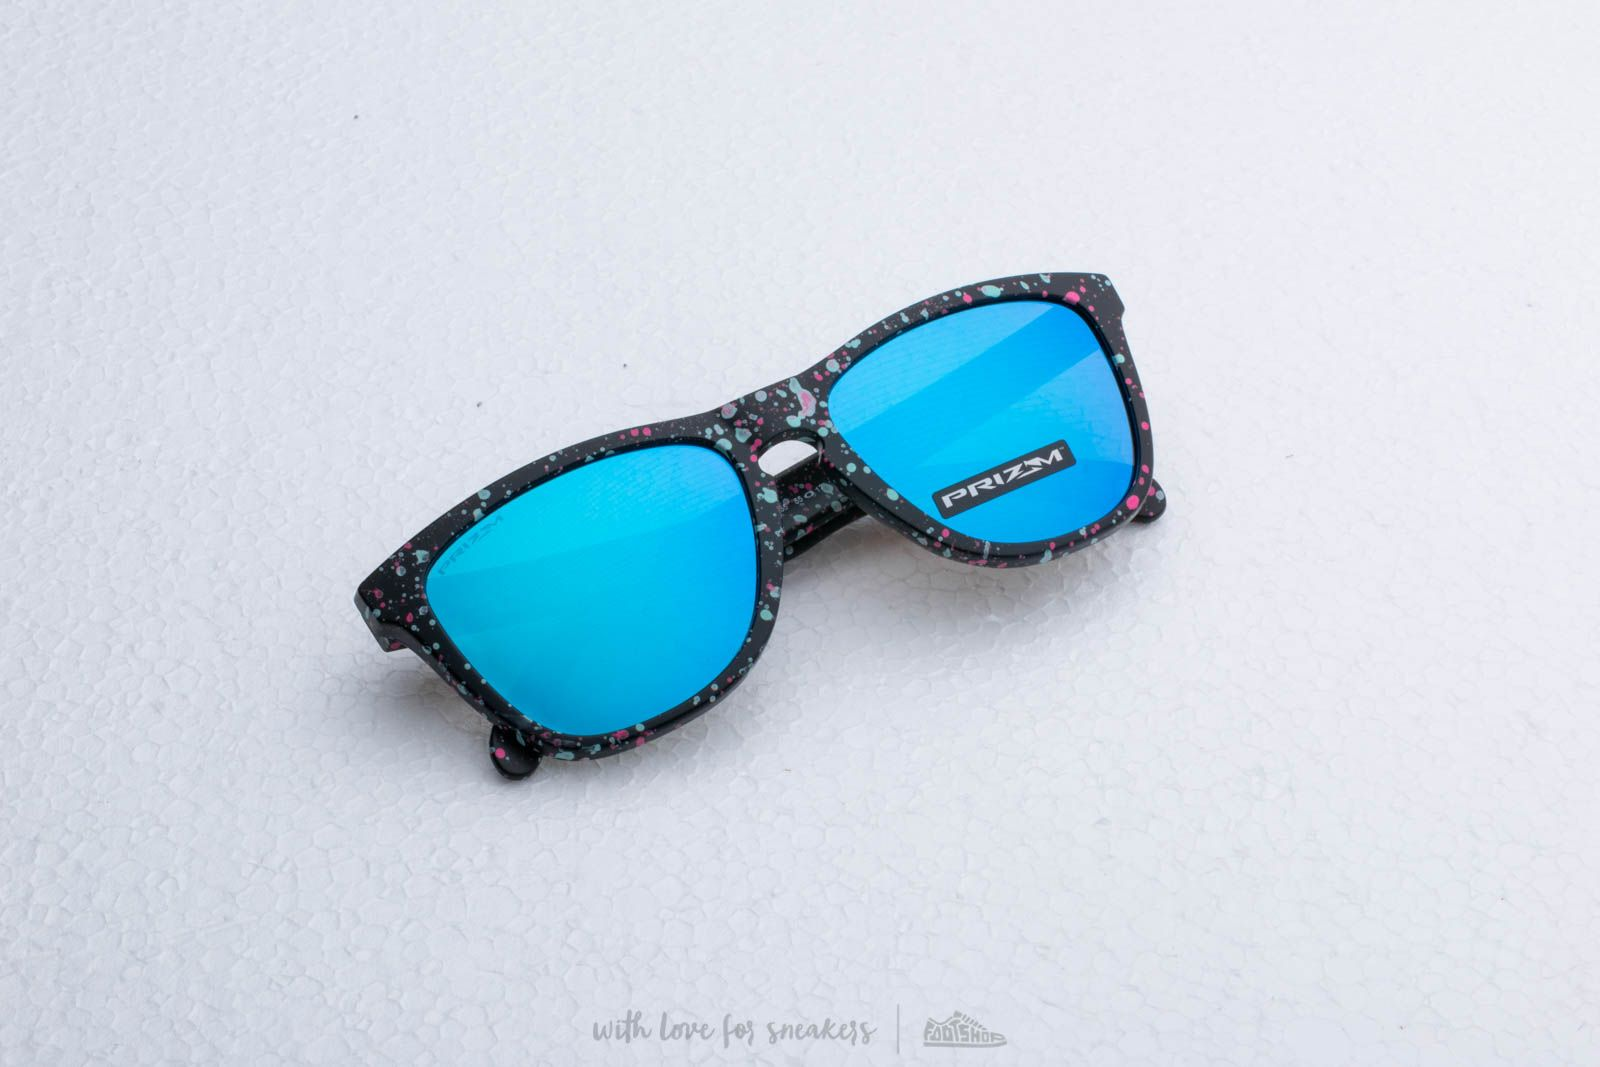 7a4d63115d8 Oakley Frogskins Lite Splatterfade Sunglasses Black  Prizm Sapphire Iridium  at a great price 117 €